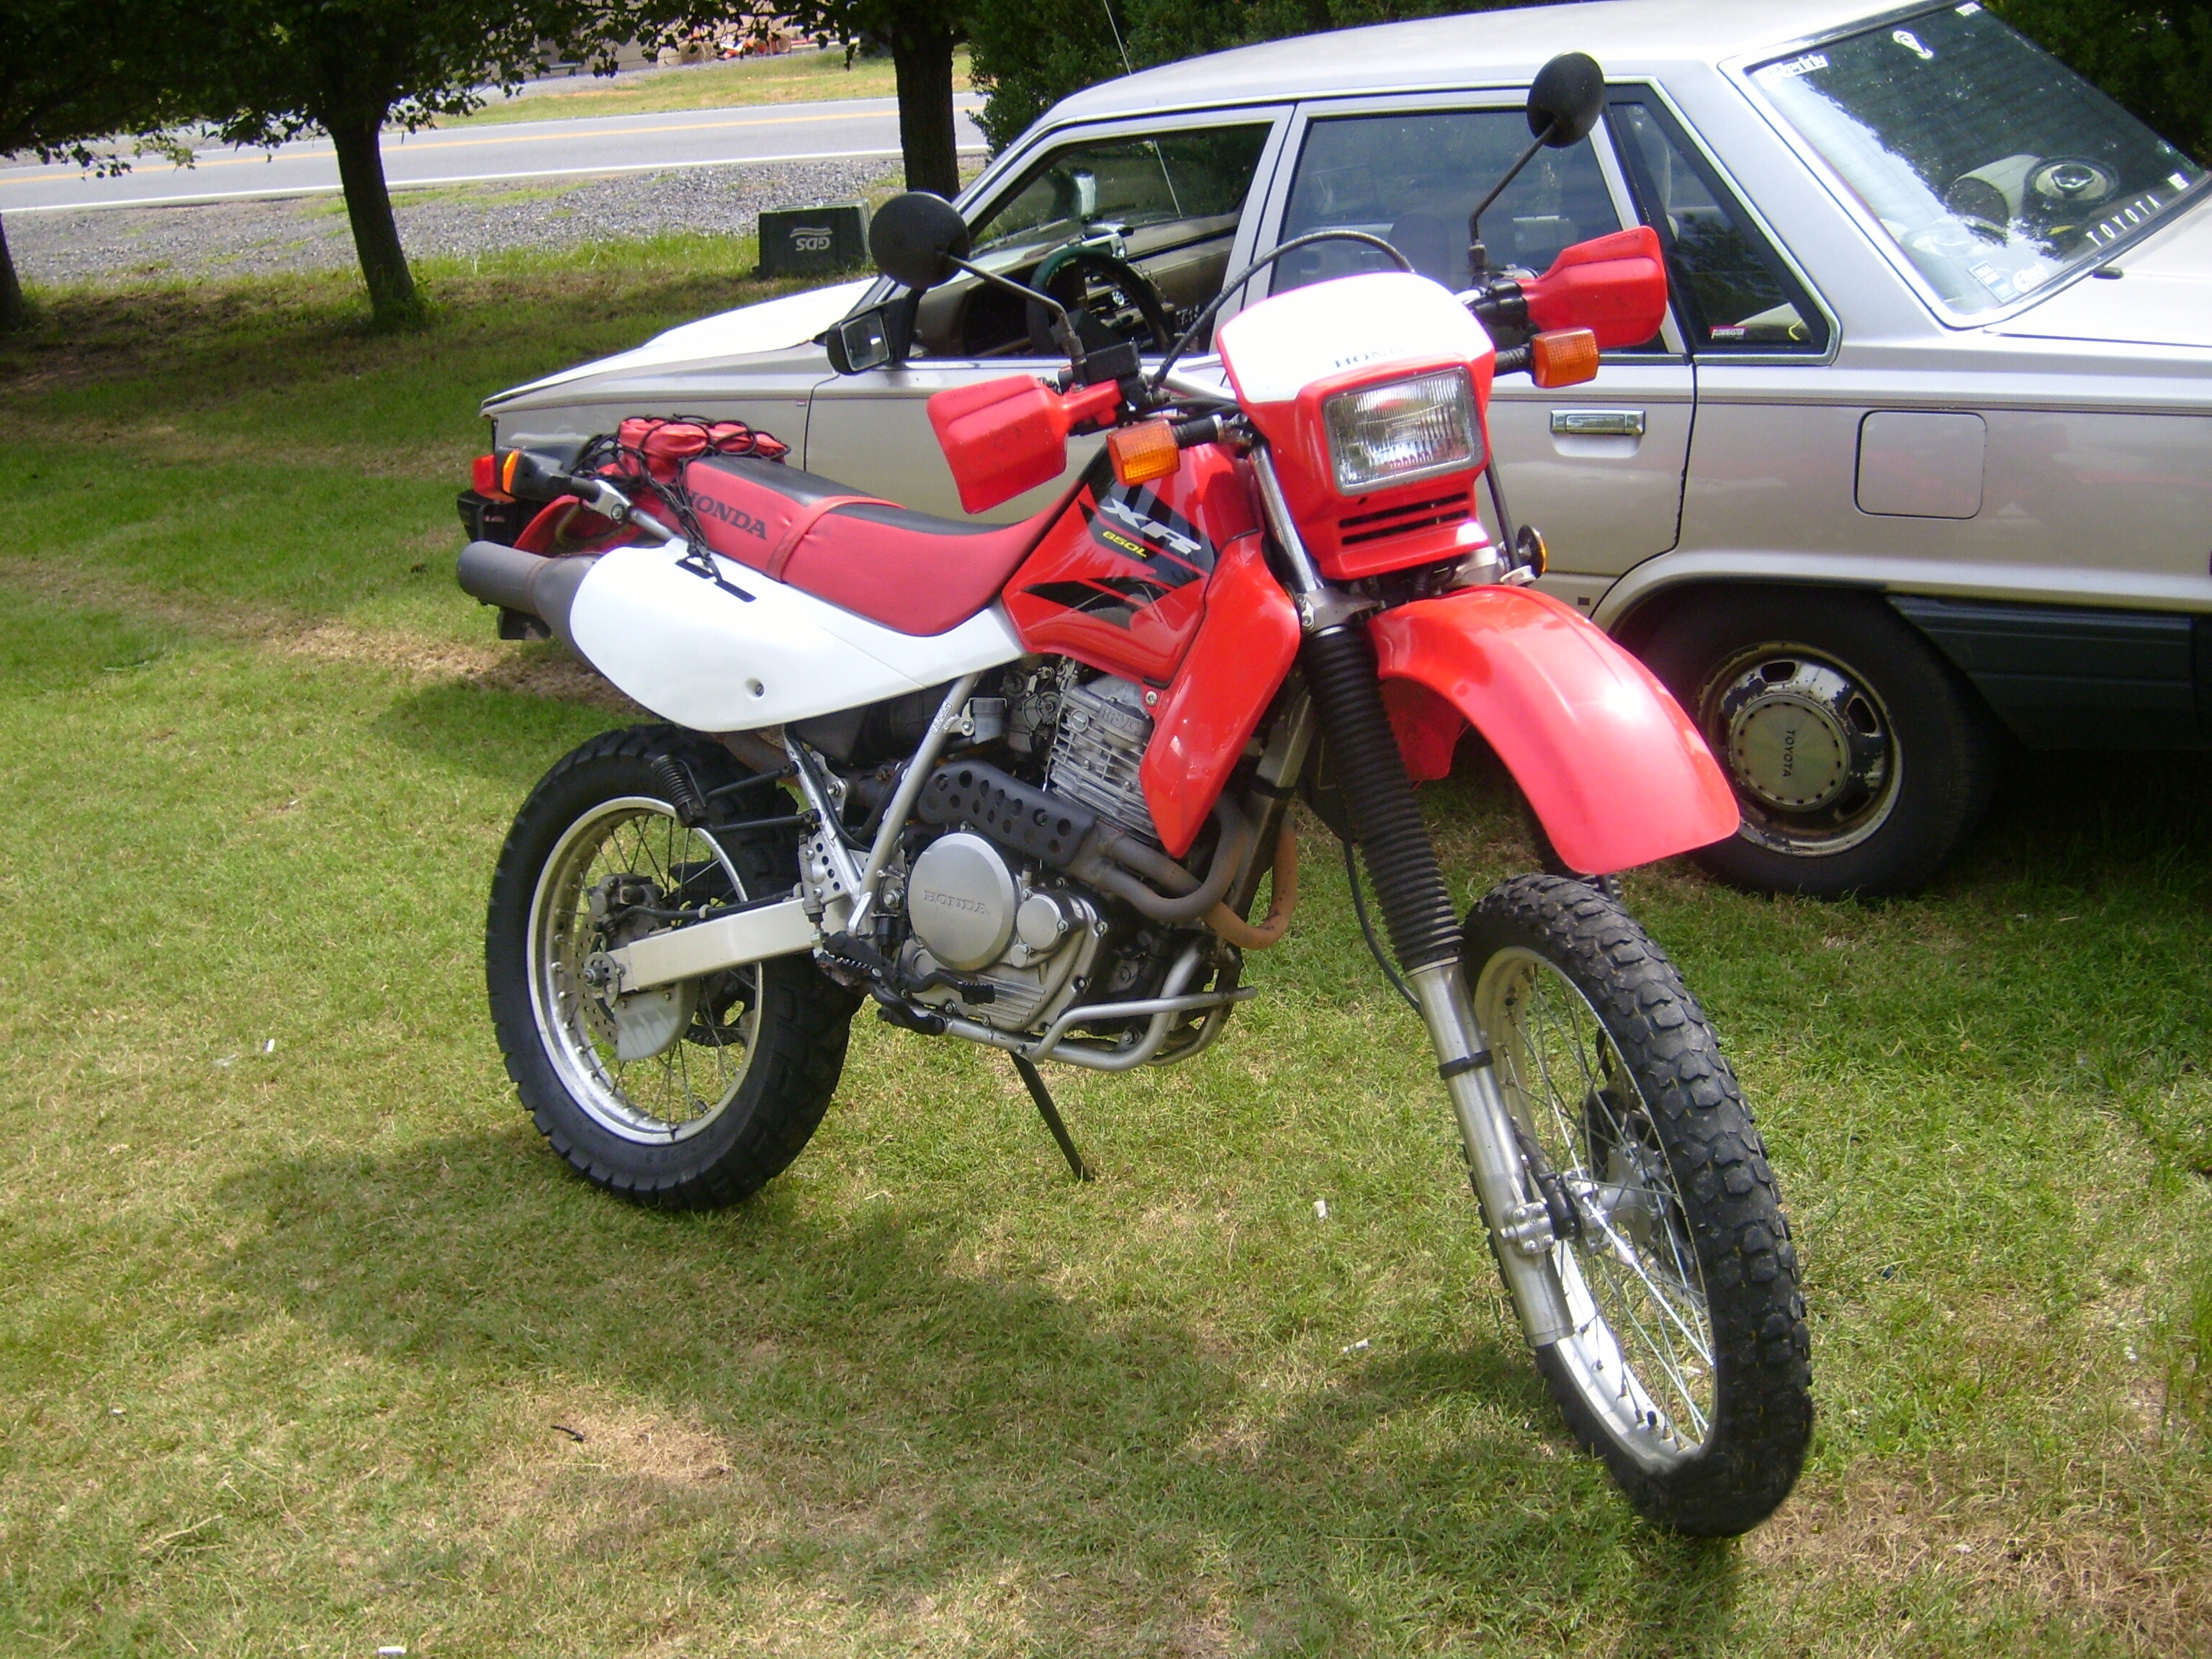 Xr 650ledit